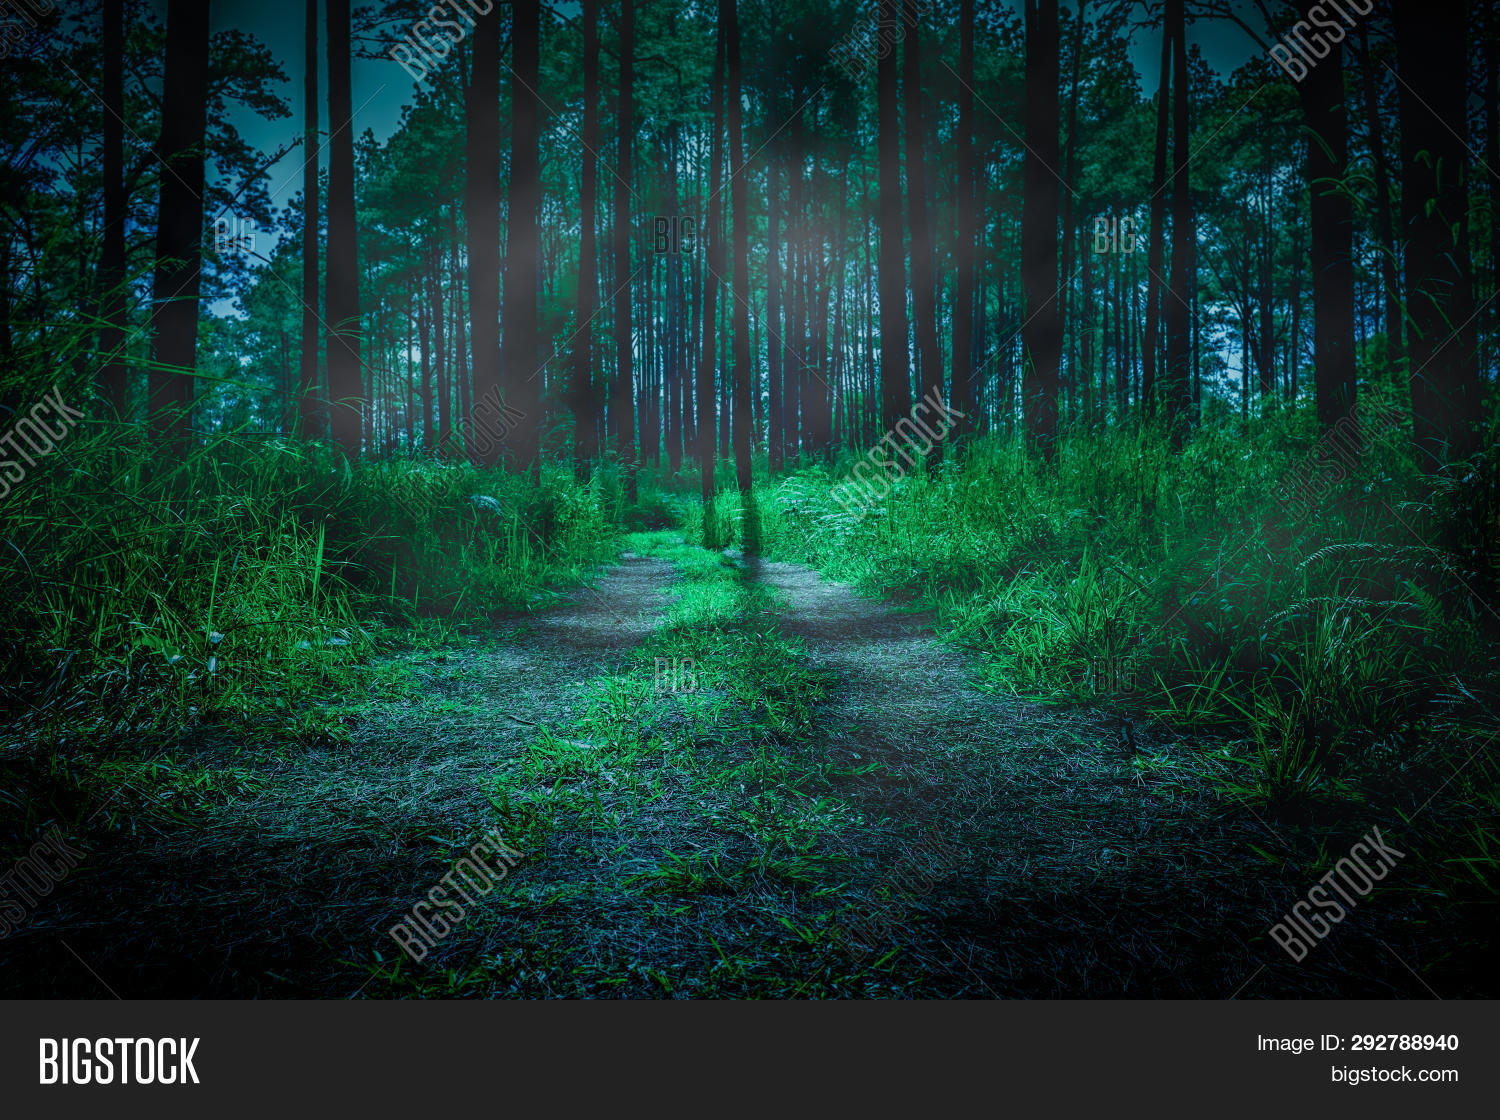 Dark Forest Fog Image Photo Free Trial Bigstock Hd wallpapers and background images. dark forest fog image photo free